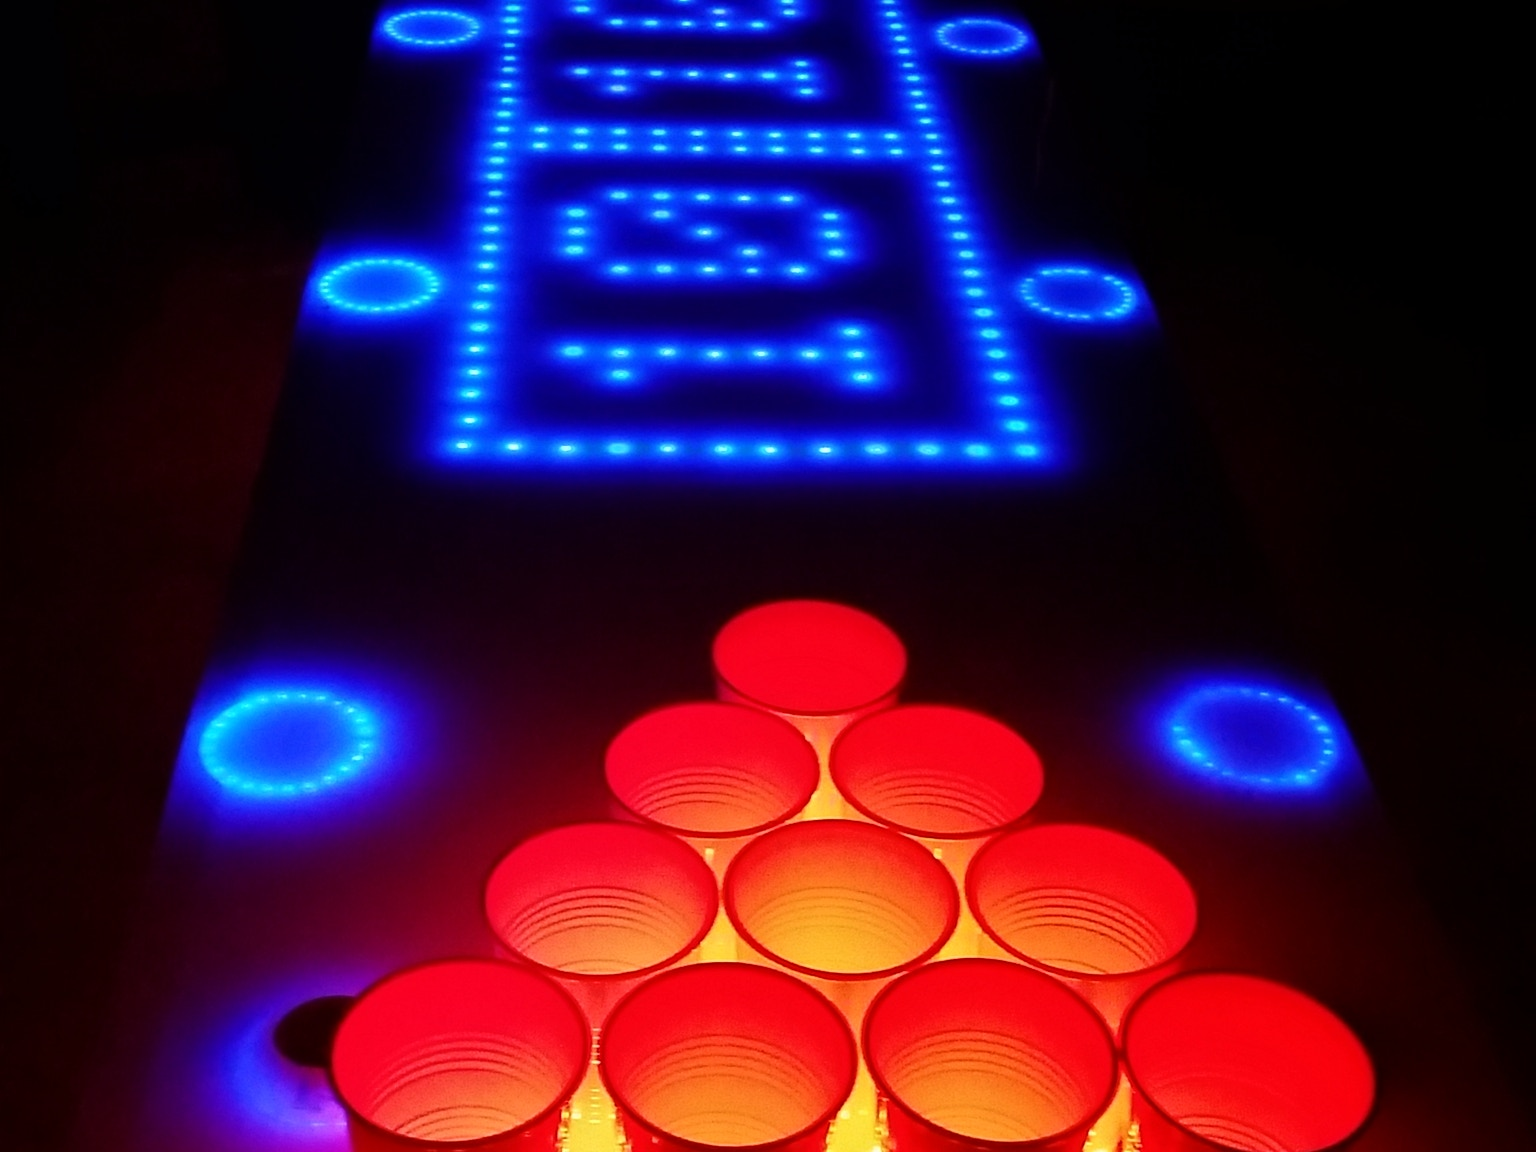 Interactive led beer pong table kit bpt x5 by jeff nybo - Interactive led beer pong table ...